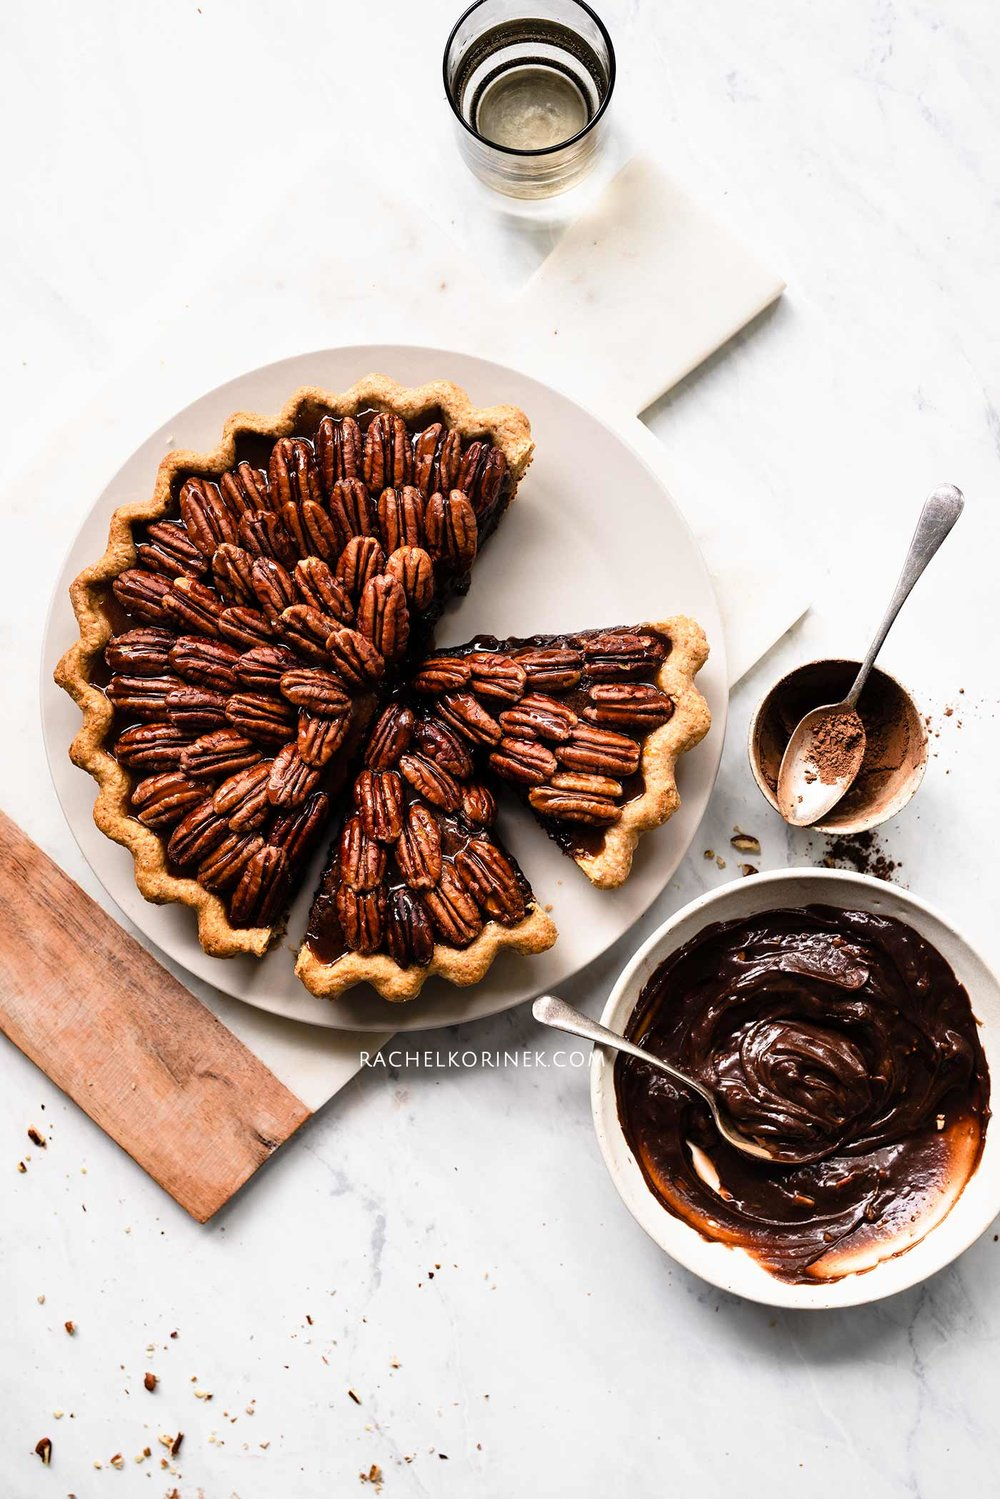 Rachel Korinek   Food Photographer Pecan Pie  Click to check out my latest food photography projects.  #twolovesstudio #beautifulcuisine #foodbloggerpro #foodphotography #learnfoodphotography #foodblogger #learnphotography #foodstyling #lightingtips #naturallight #foodphotographer